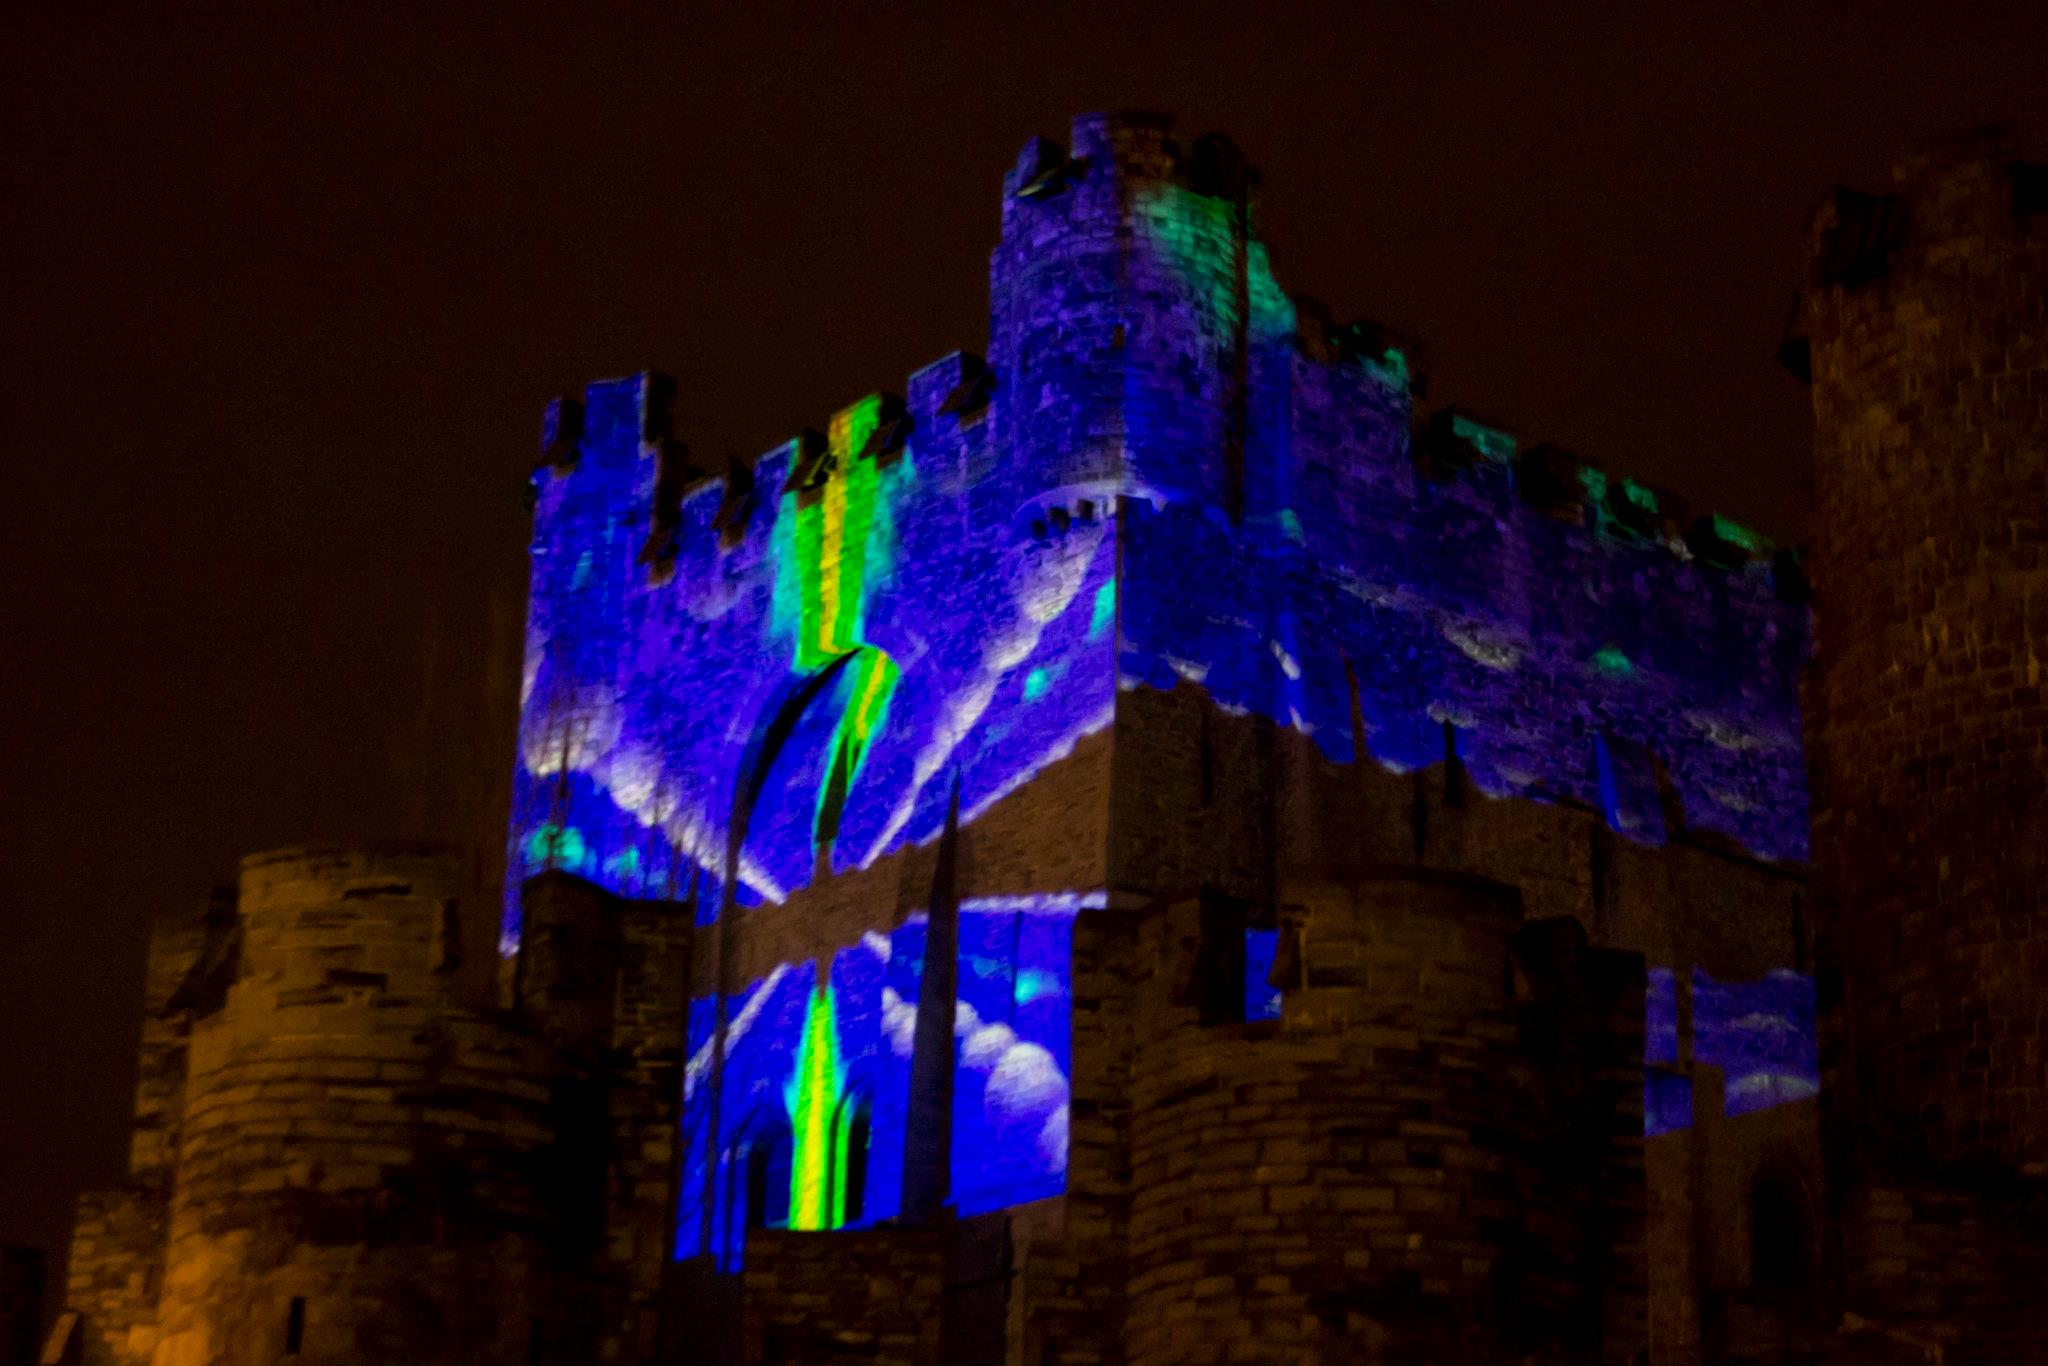 Simulated STM of nanowires projected on the Gravensteen (Ghent) during the 2012 Light Festival). Courtesy of Glenn Pollefeyt